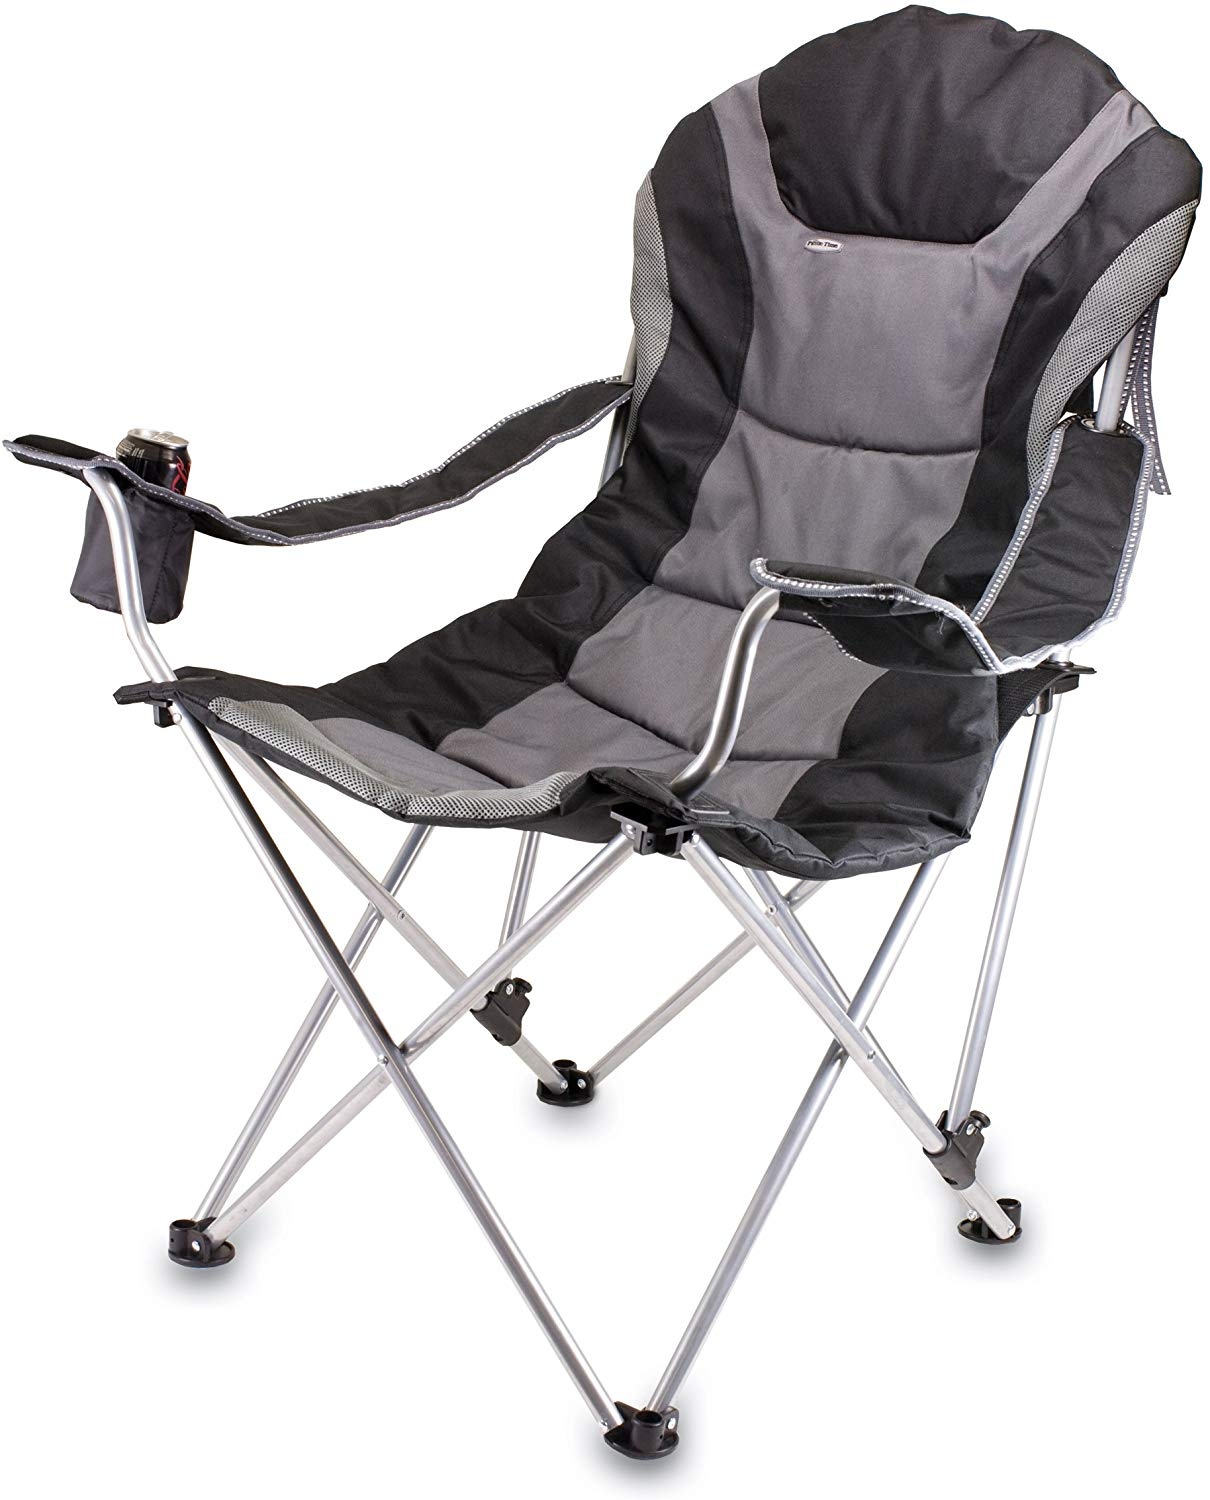 Top 10 Best Reclining Camping Chairs 2021 Reviews 6